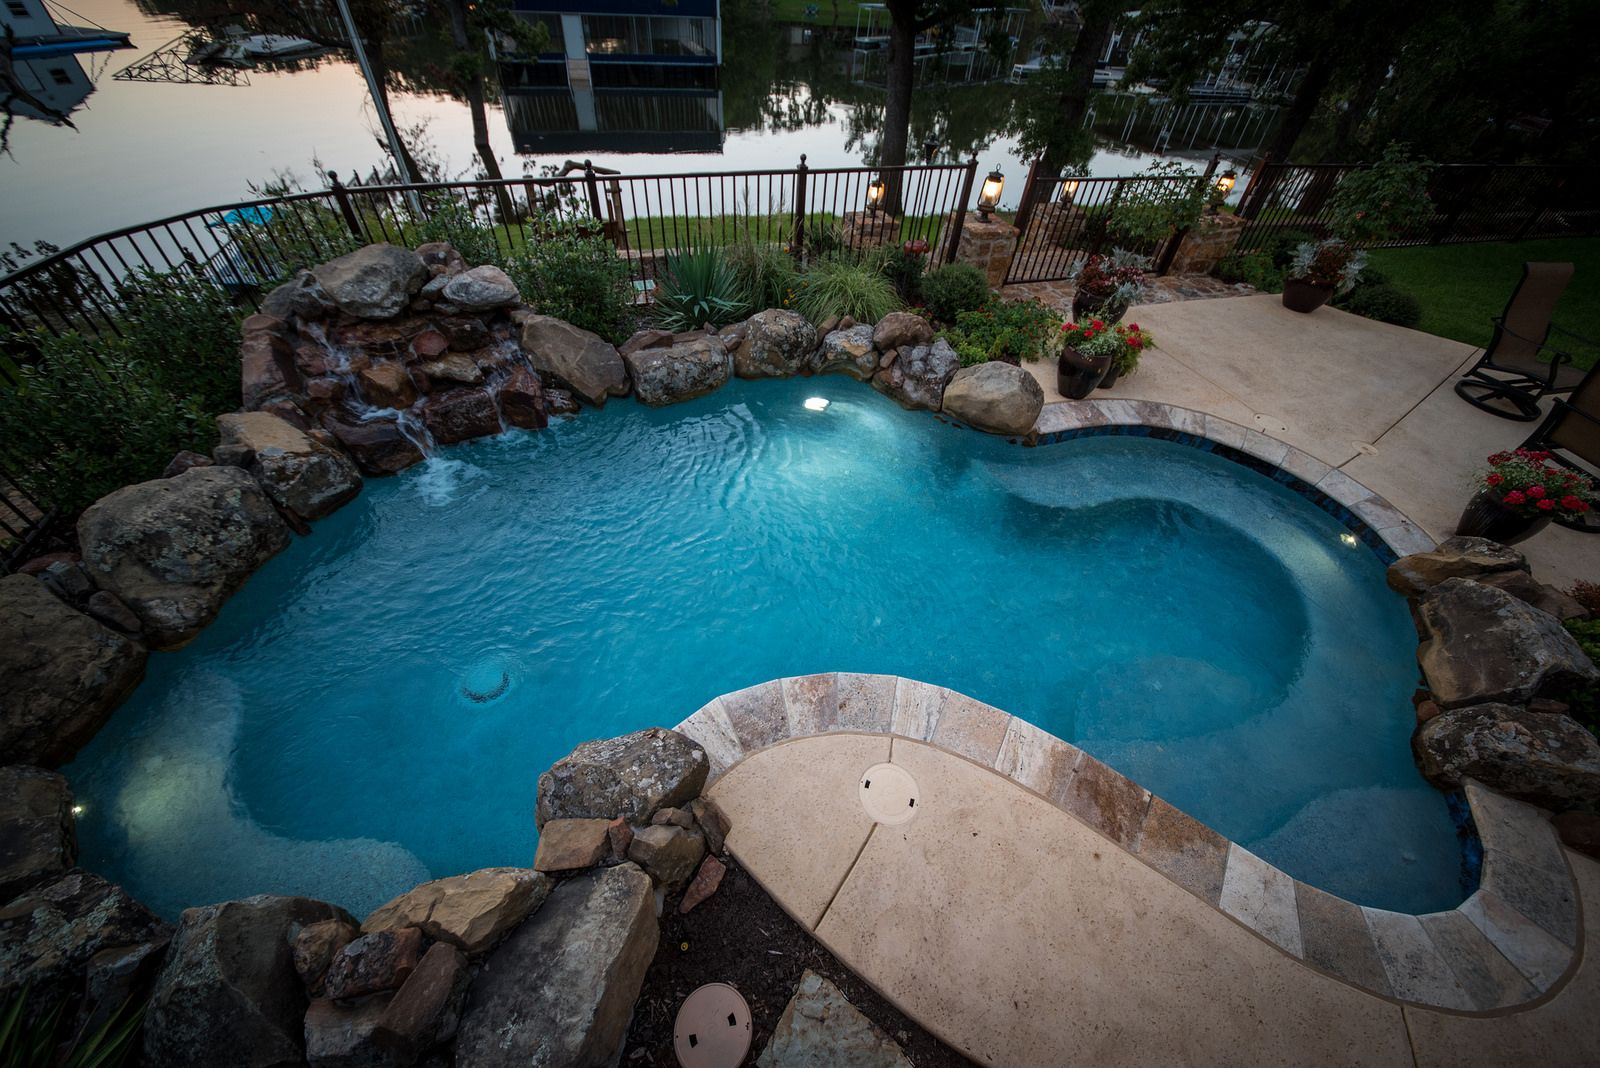 Freeform style pool with waterfall | Small backyard pools ... |Small Freeform Pools With Waterfalls